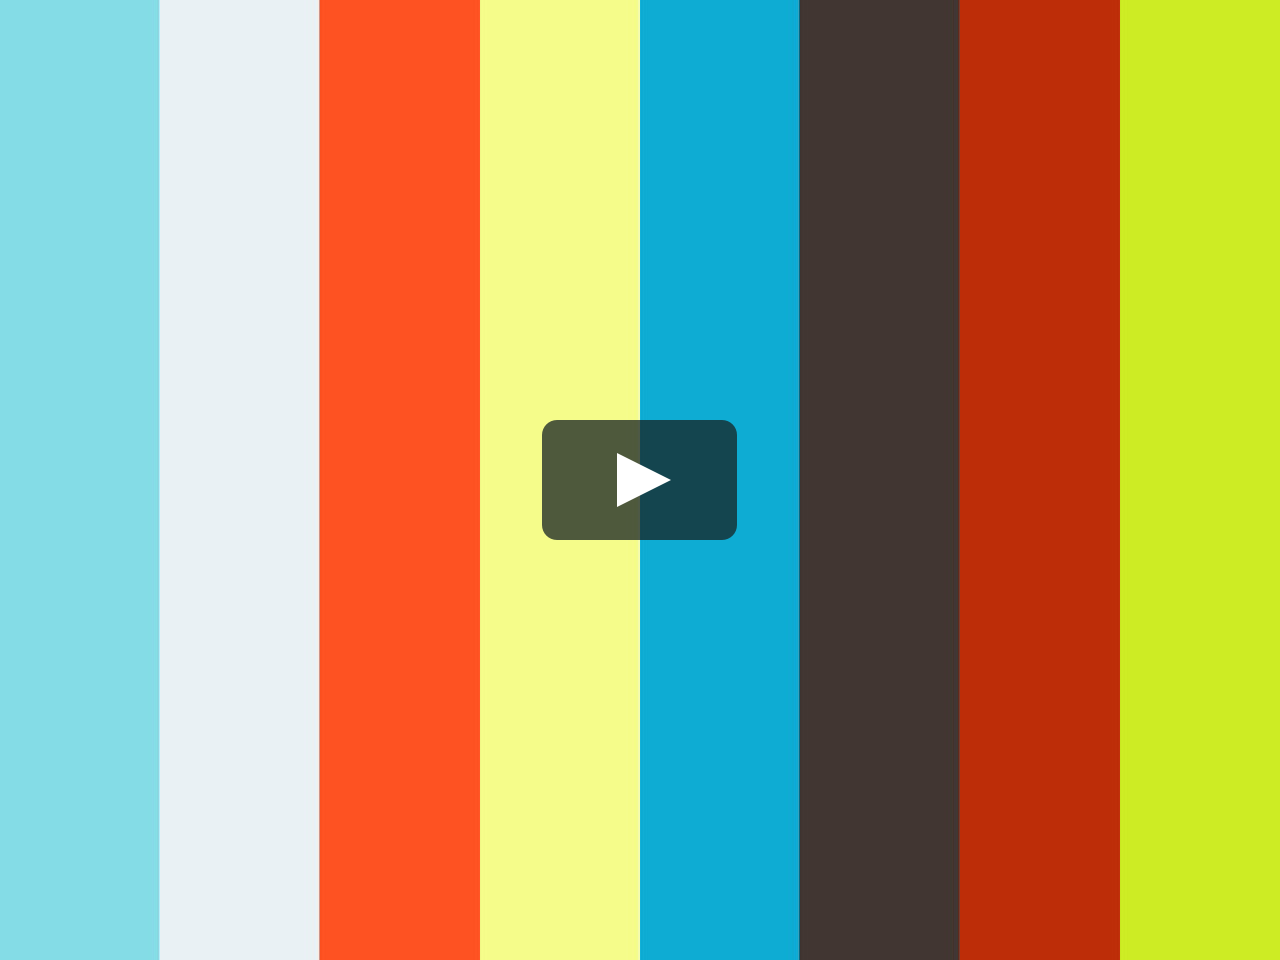 Wolfgang Amadeus Mozart -  Piano Sonata No. 14 in C minor, K. 457 1st movement